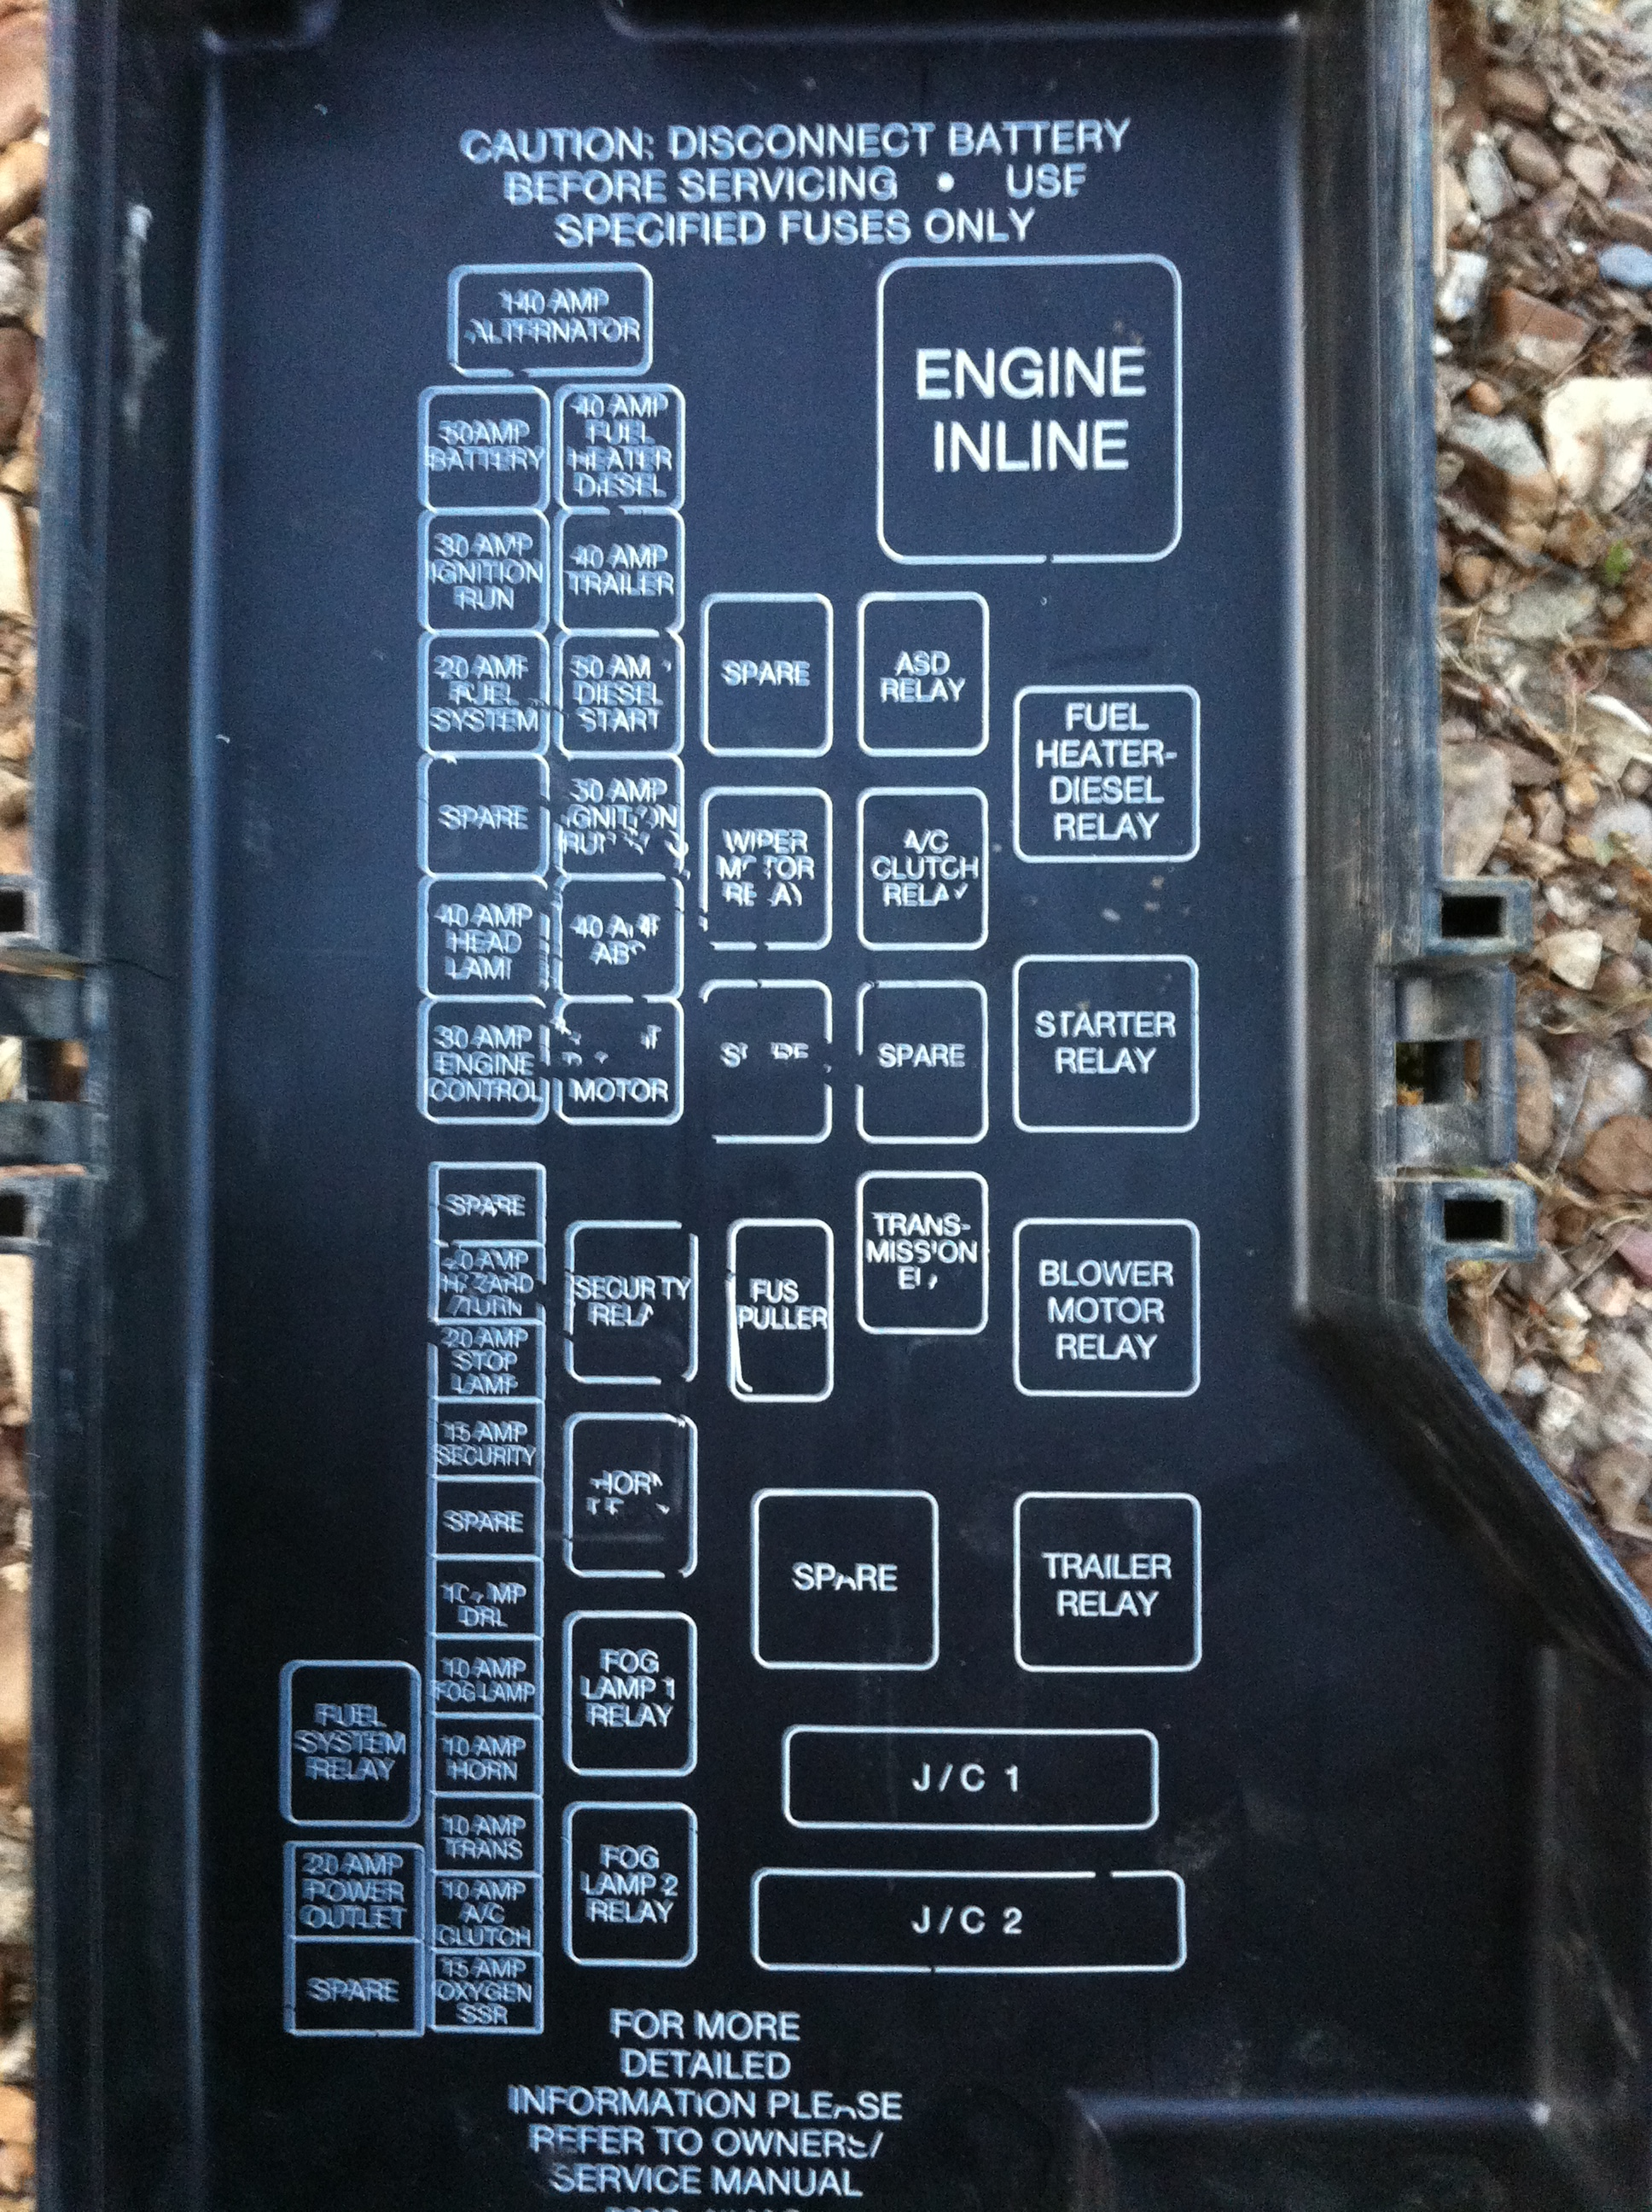 1999 Dodge Ram 1500 Wiring Diagram As Well Dodge Ram 1500 Radio Wiring